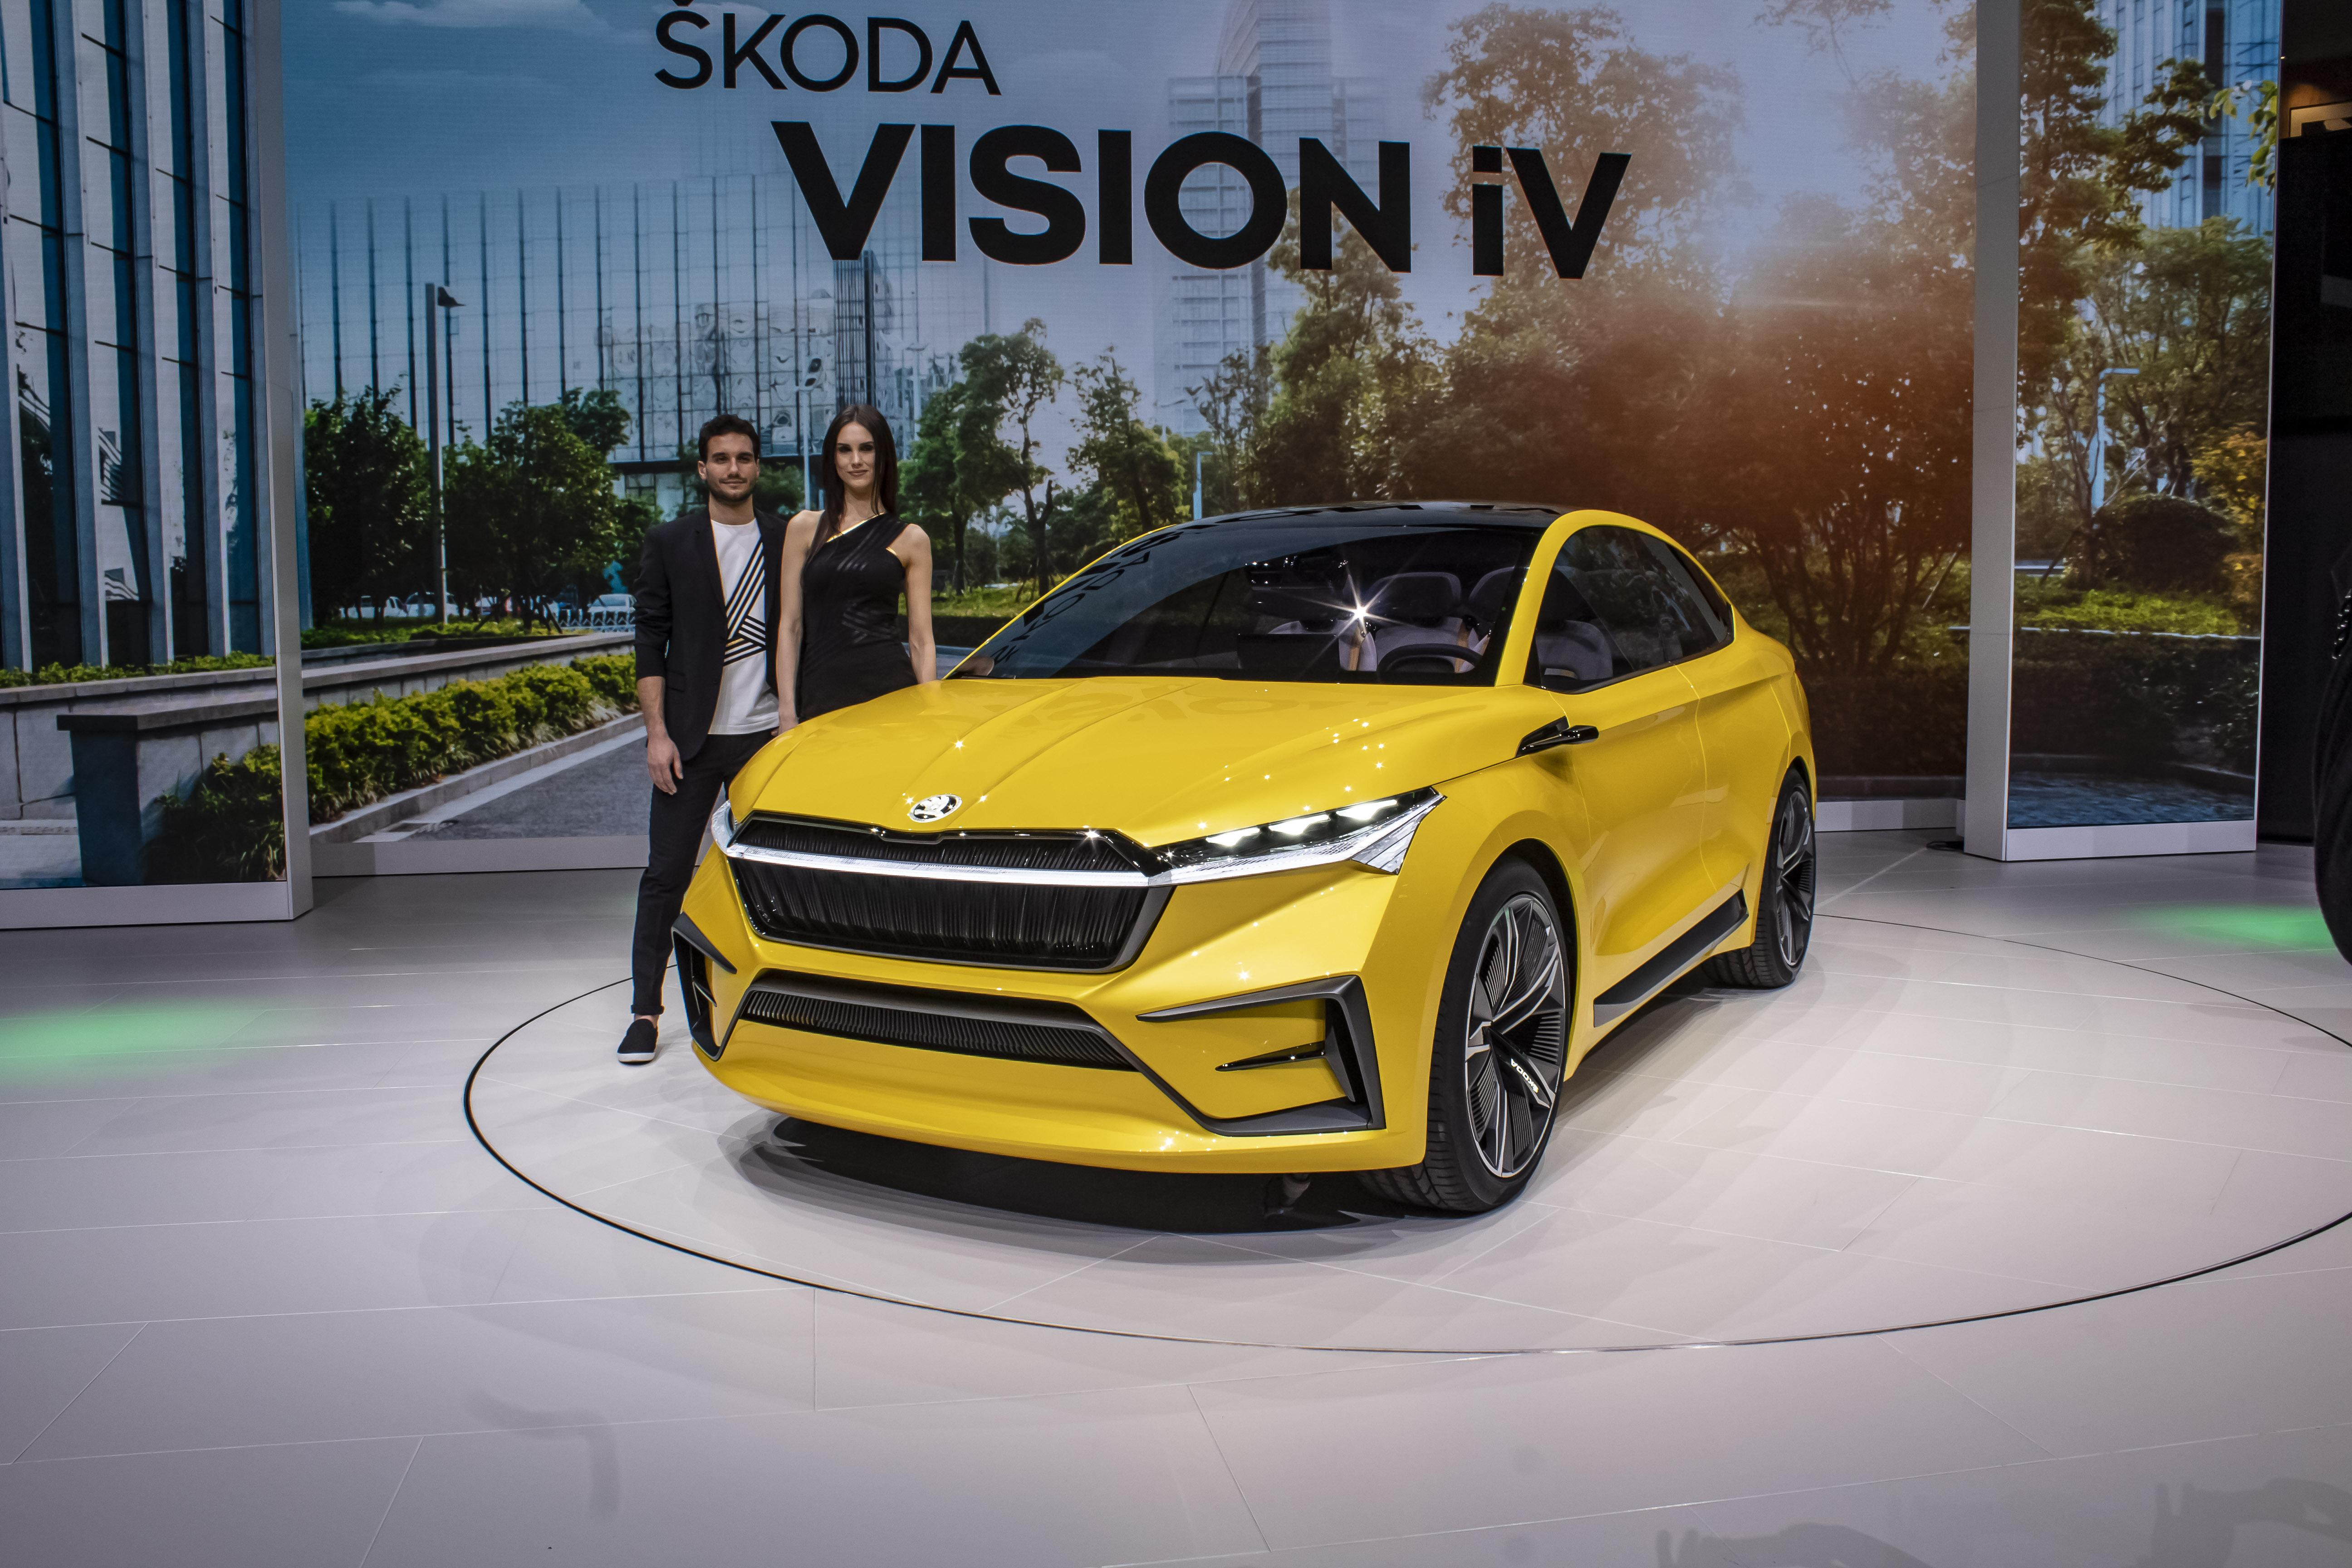 2019 Skoda Vision IV Concept Pictures, Photos, Wallpapers.